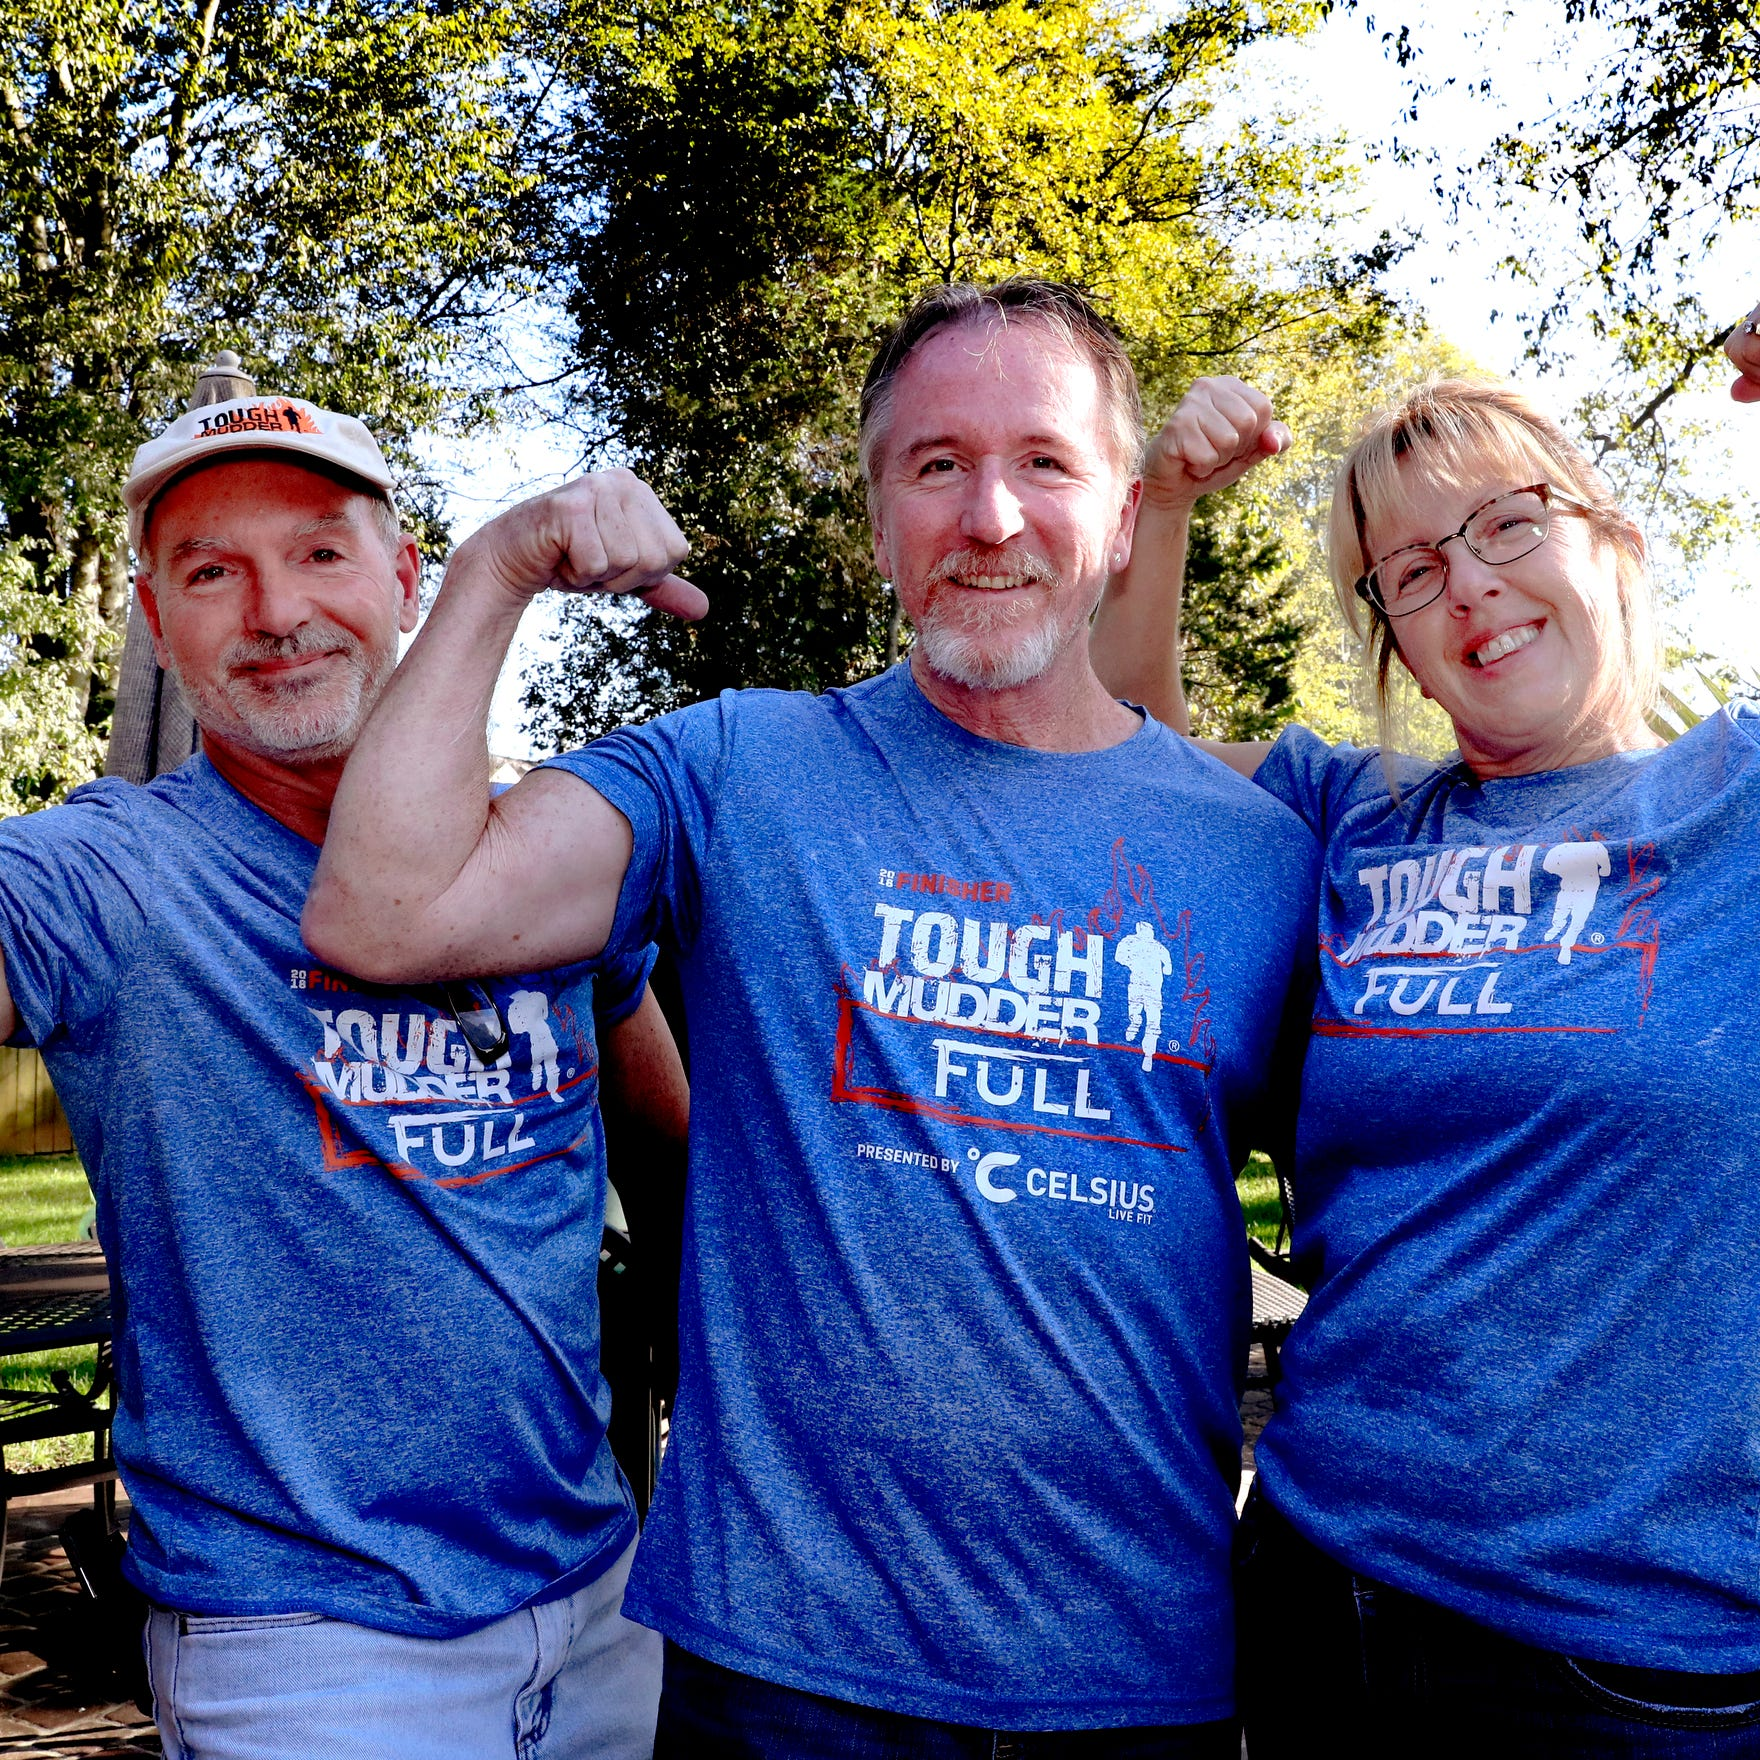 Scott Degenhardt, left, Bruce Ippel, center, and Tina Ippel, right all competed together in a tough mudder event despite Bruce Ippel being diagnosed with MS, on Wednesday, Oct. 24, 2018.